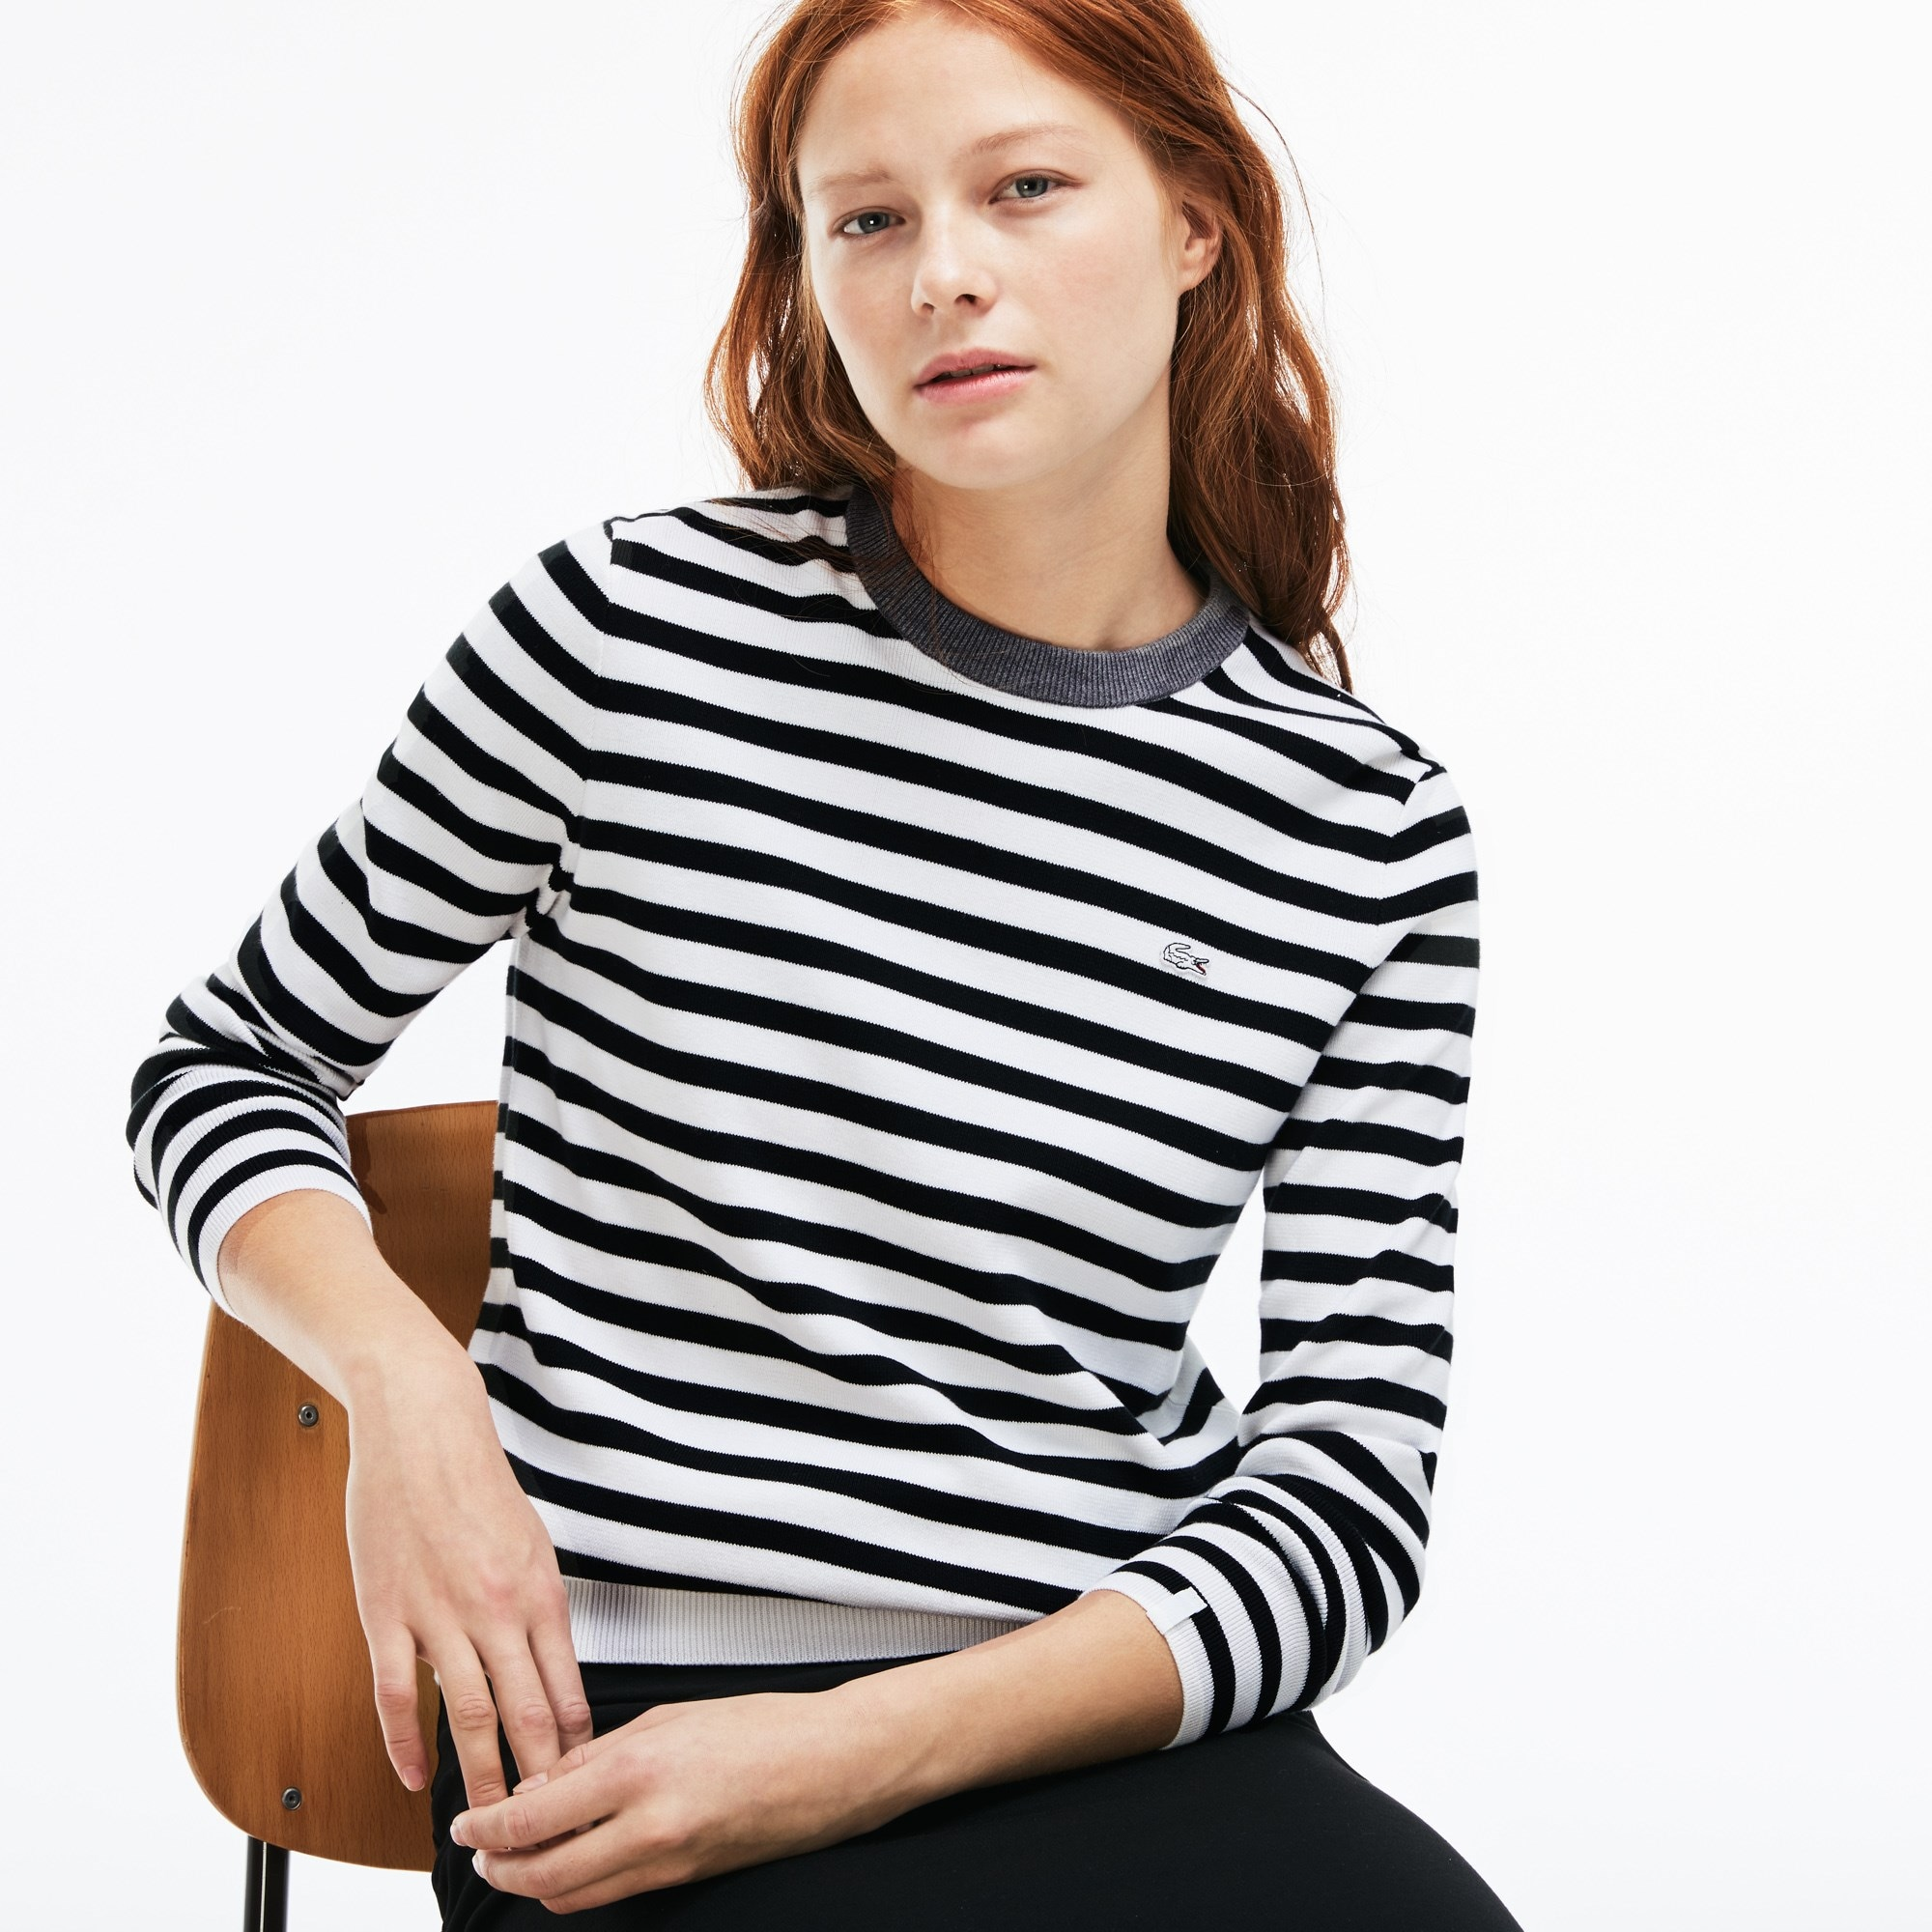 Lacoste Lacoste Live Arrivals New What's New Arrivals What's What's Live New Lacoste Arrivals 1qwqAPSt